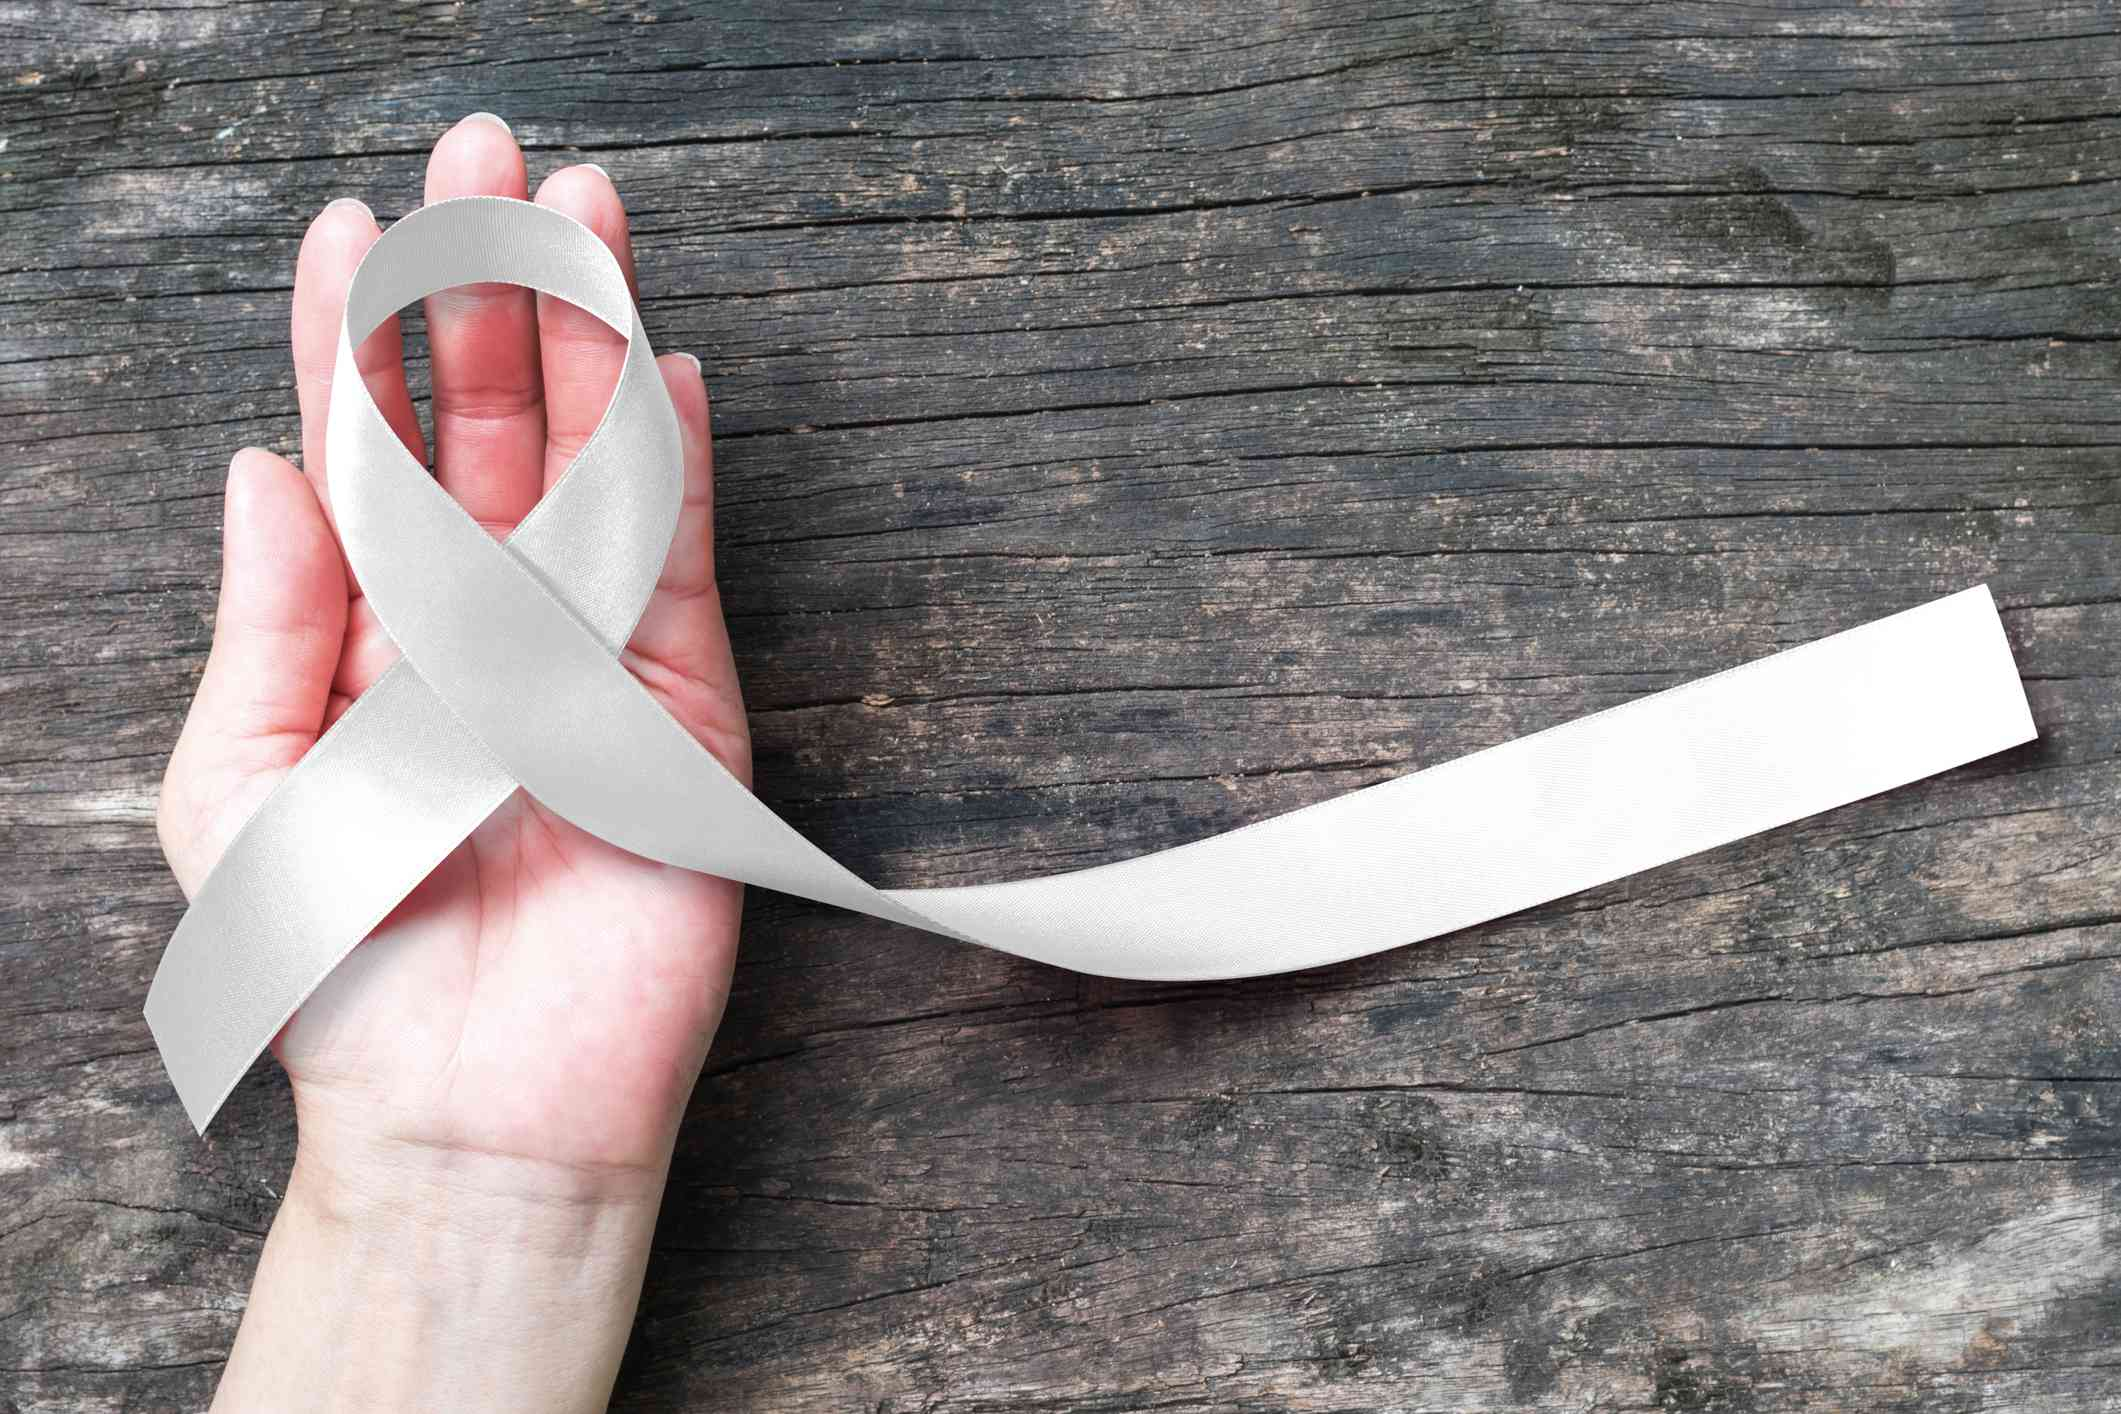 White or light pearl color ribbon for raising awareness on Lung cancer, Bone cancer, Multiple Sclerosis, Severe Combined Immune Deficiency Disease (SCID) and Newborn Screening and symbol